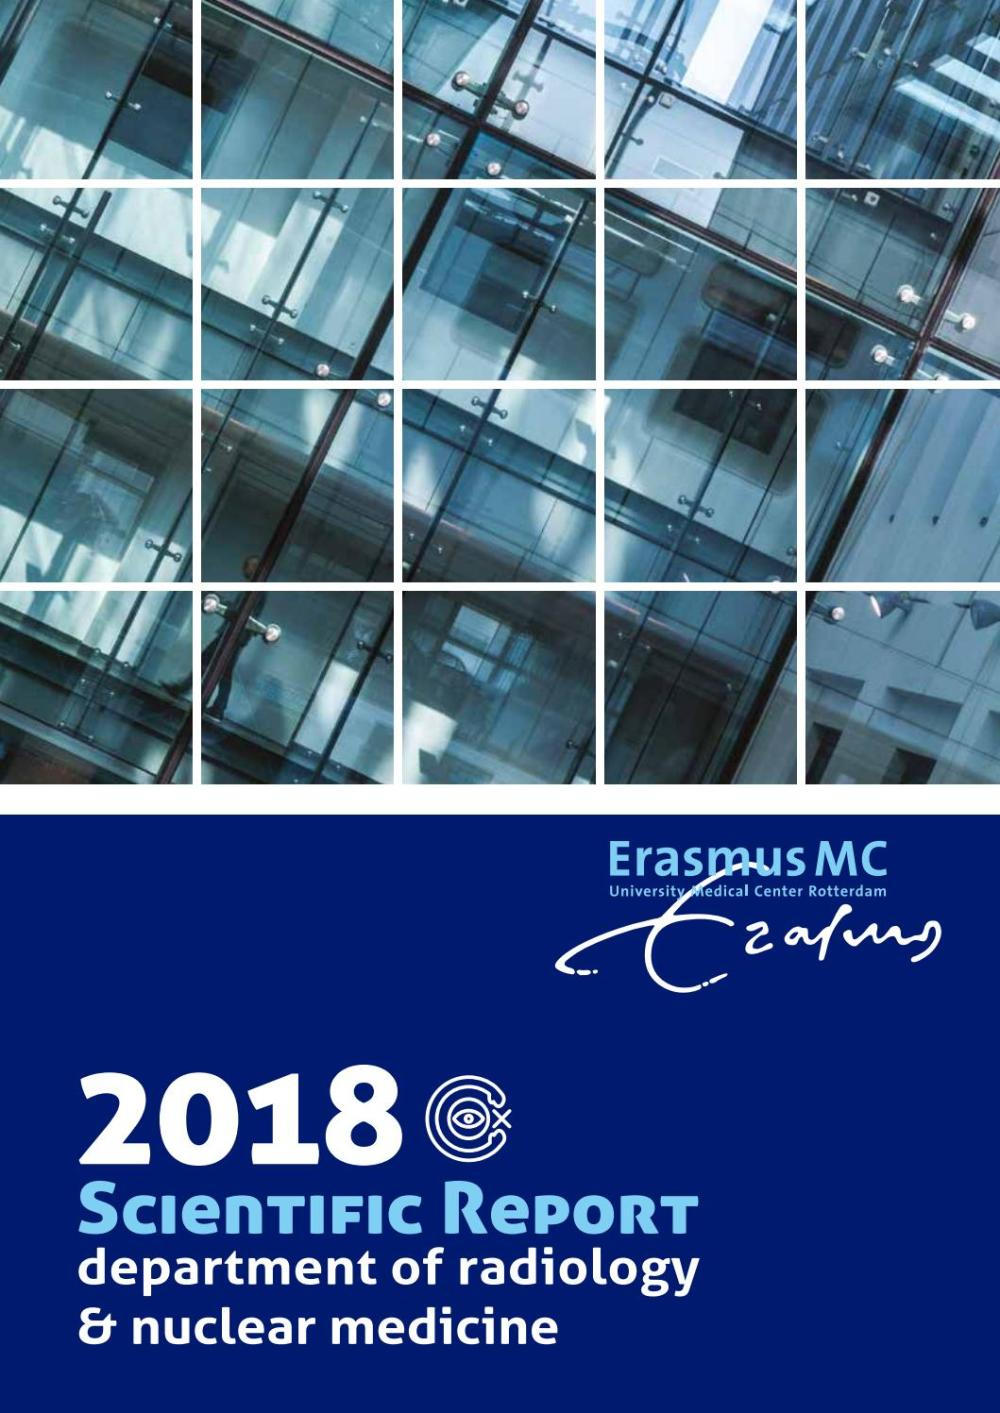 medium resolution of scientic report 2018 by erasmus mc dept of radiology nuclear medicine issuu